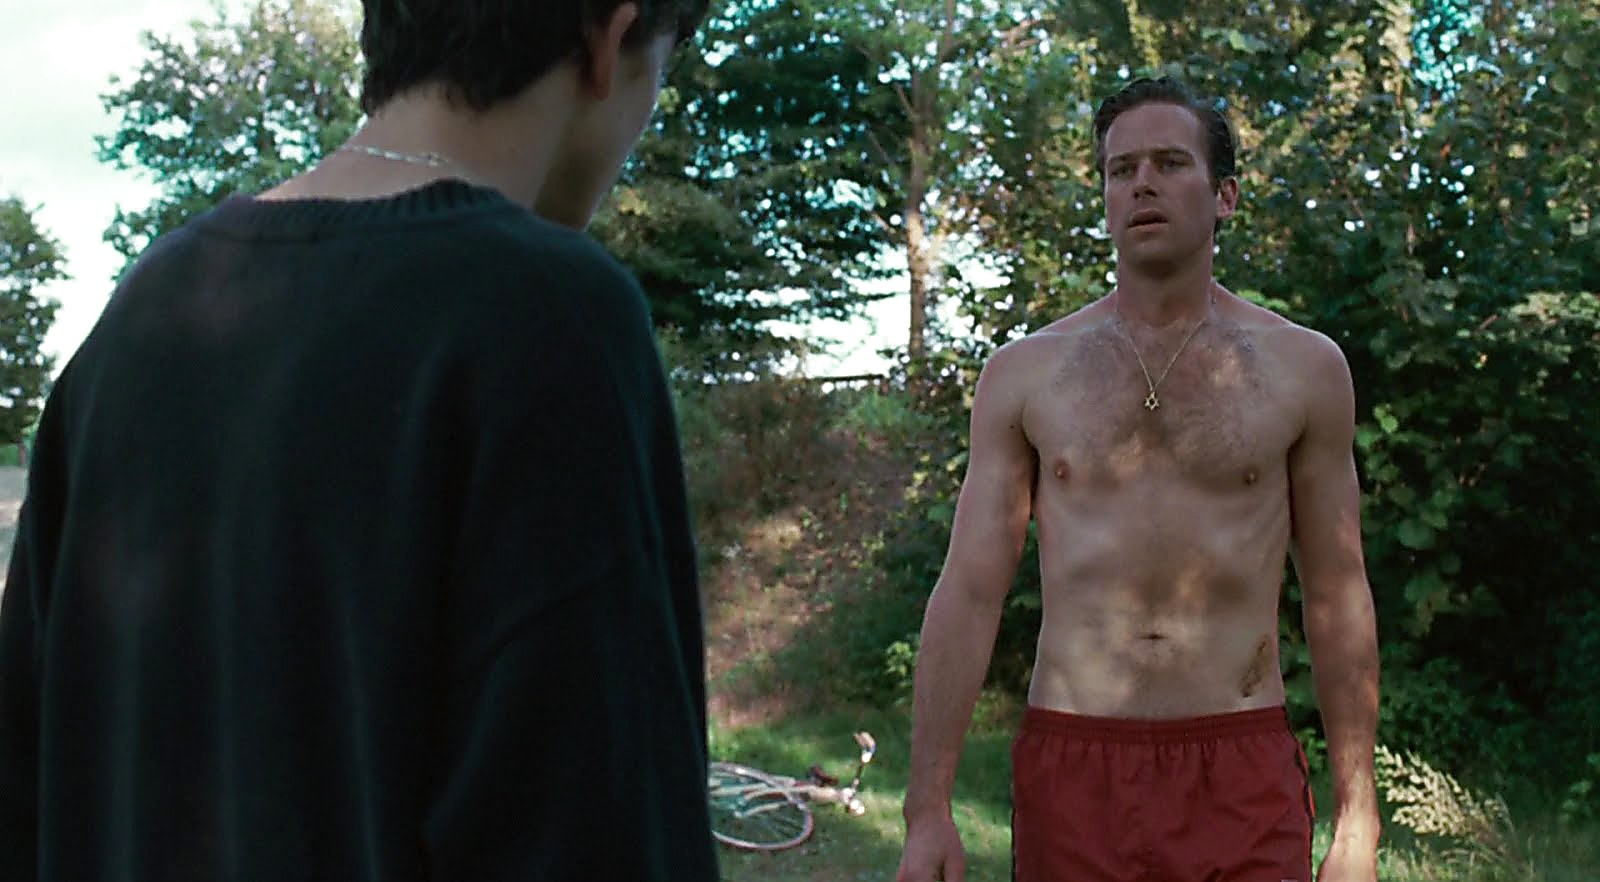 Armie Hammer sexy shirtless scene February 17, 2018, 2pm